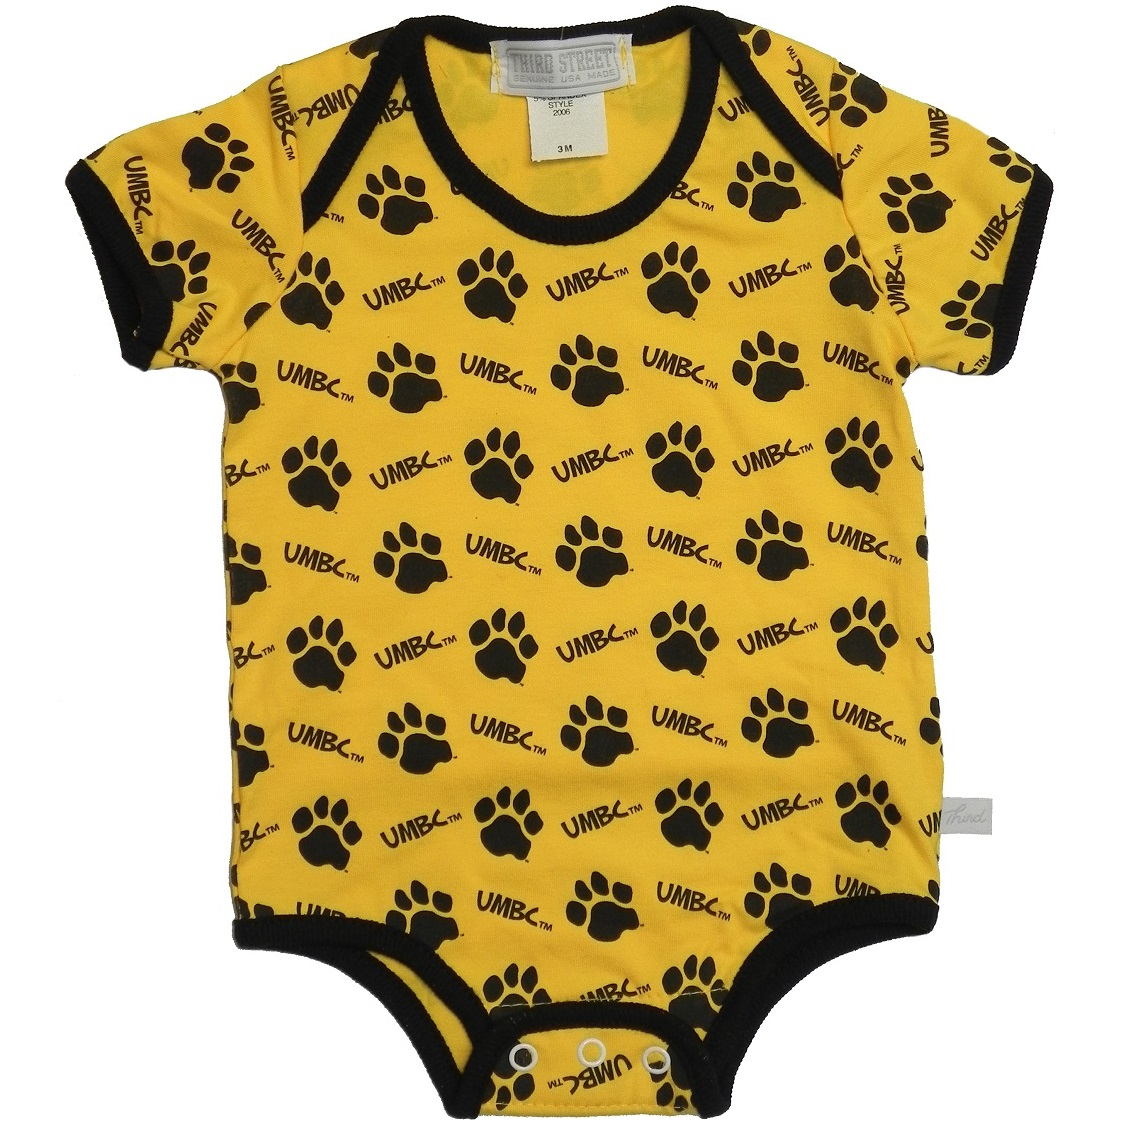 Image For BABY: UMBC PAW DIAPER SHIRT